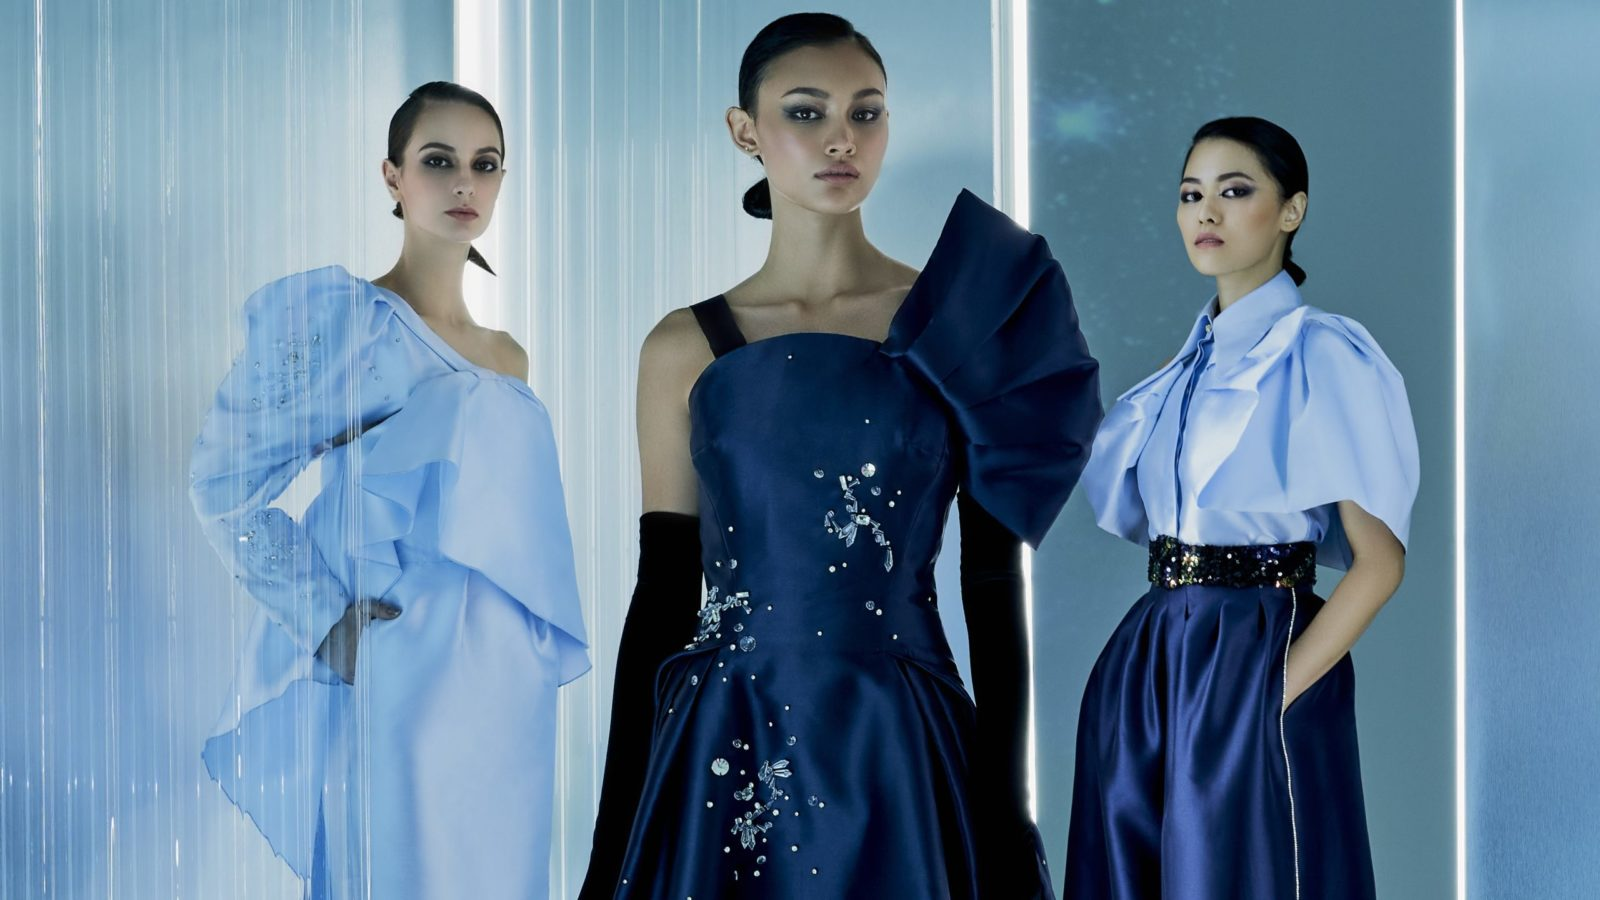 Khoon Hooi's futuristic Fall 2021 Collection takes inspiration from space